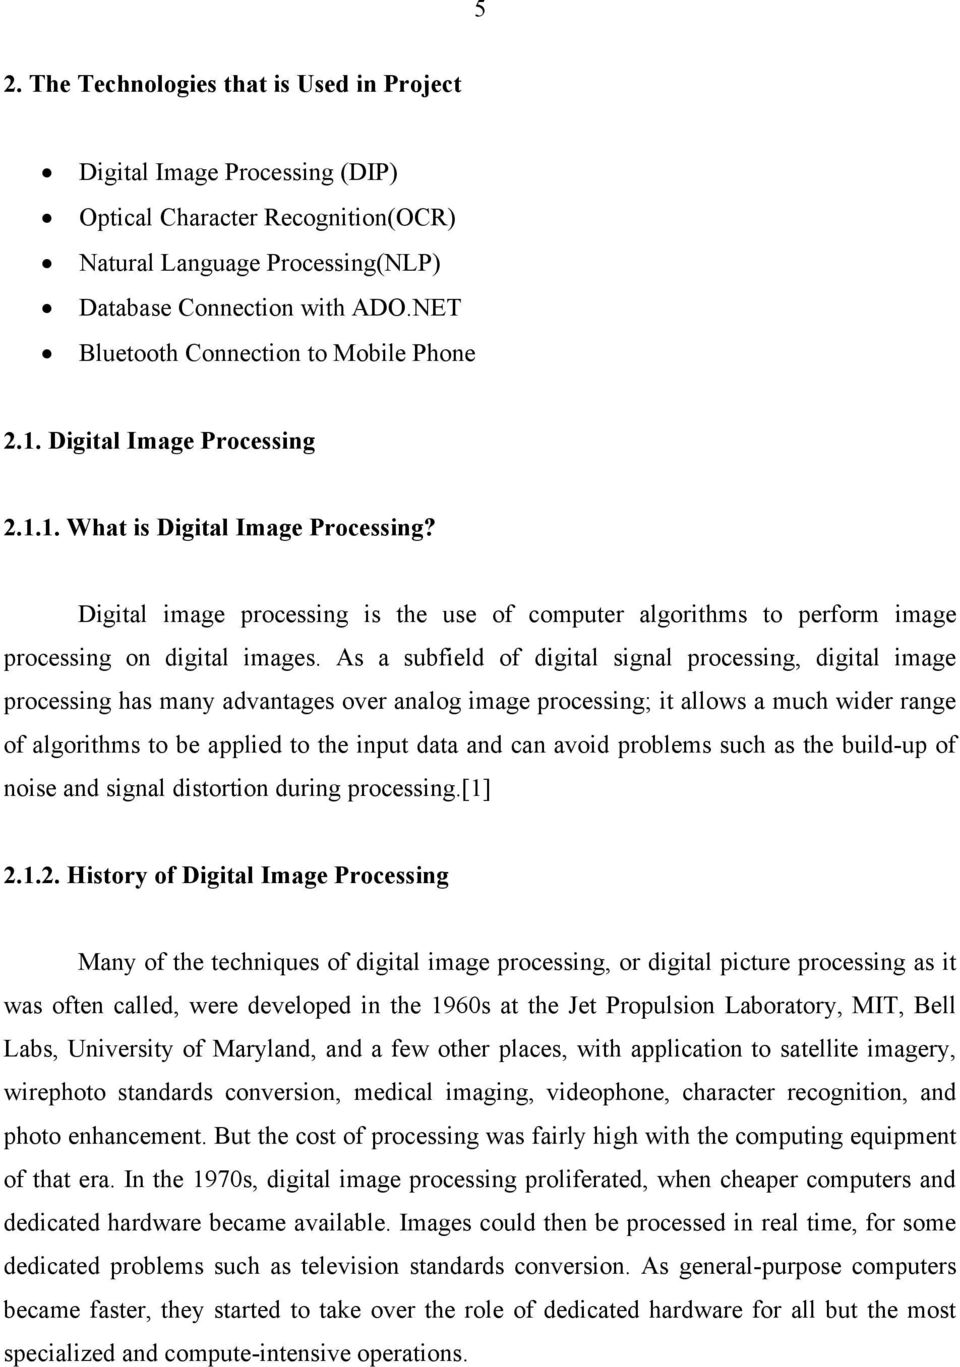 Digital image processing is the use of computer algorithms to perform image processing on digital images.